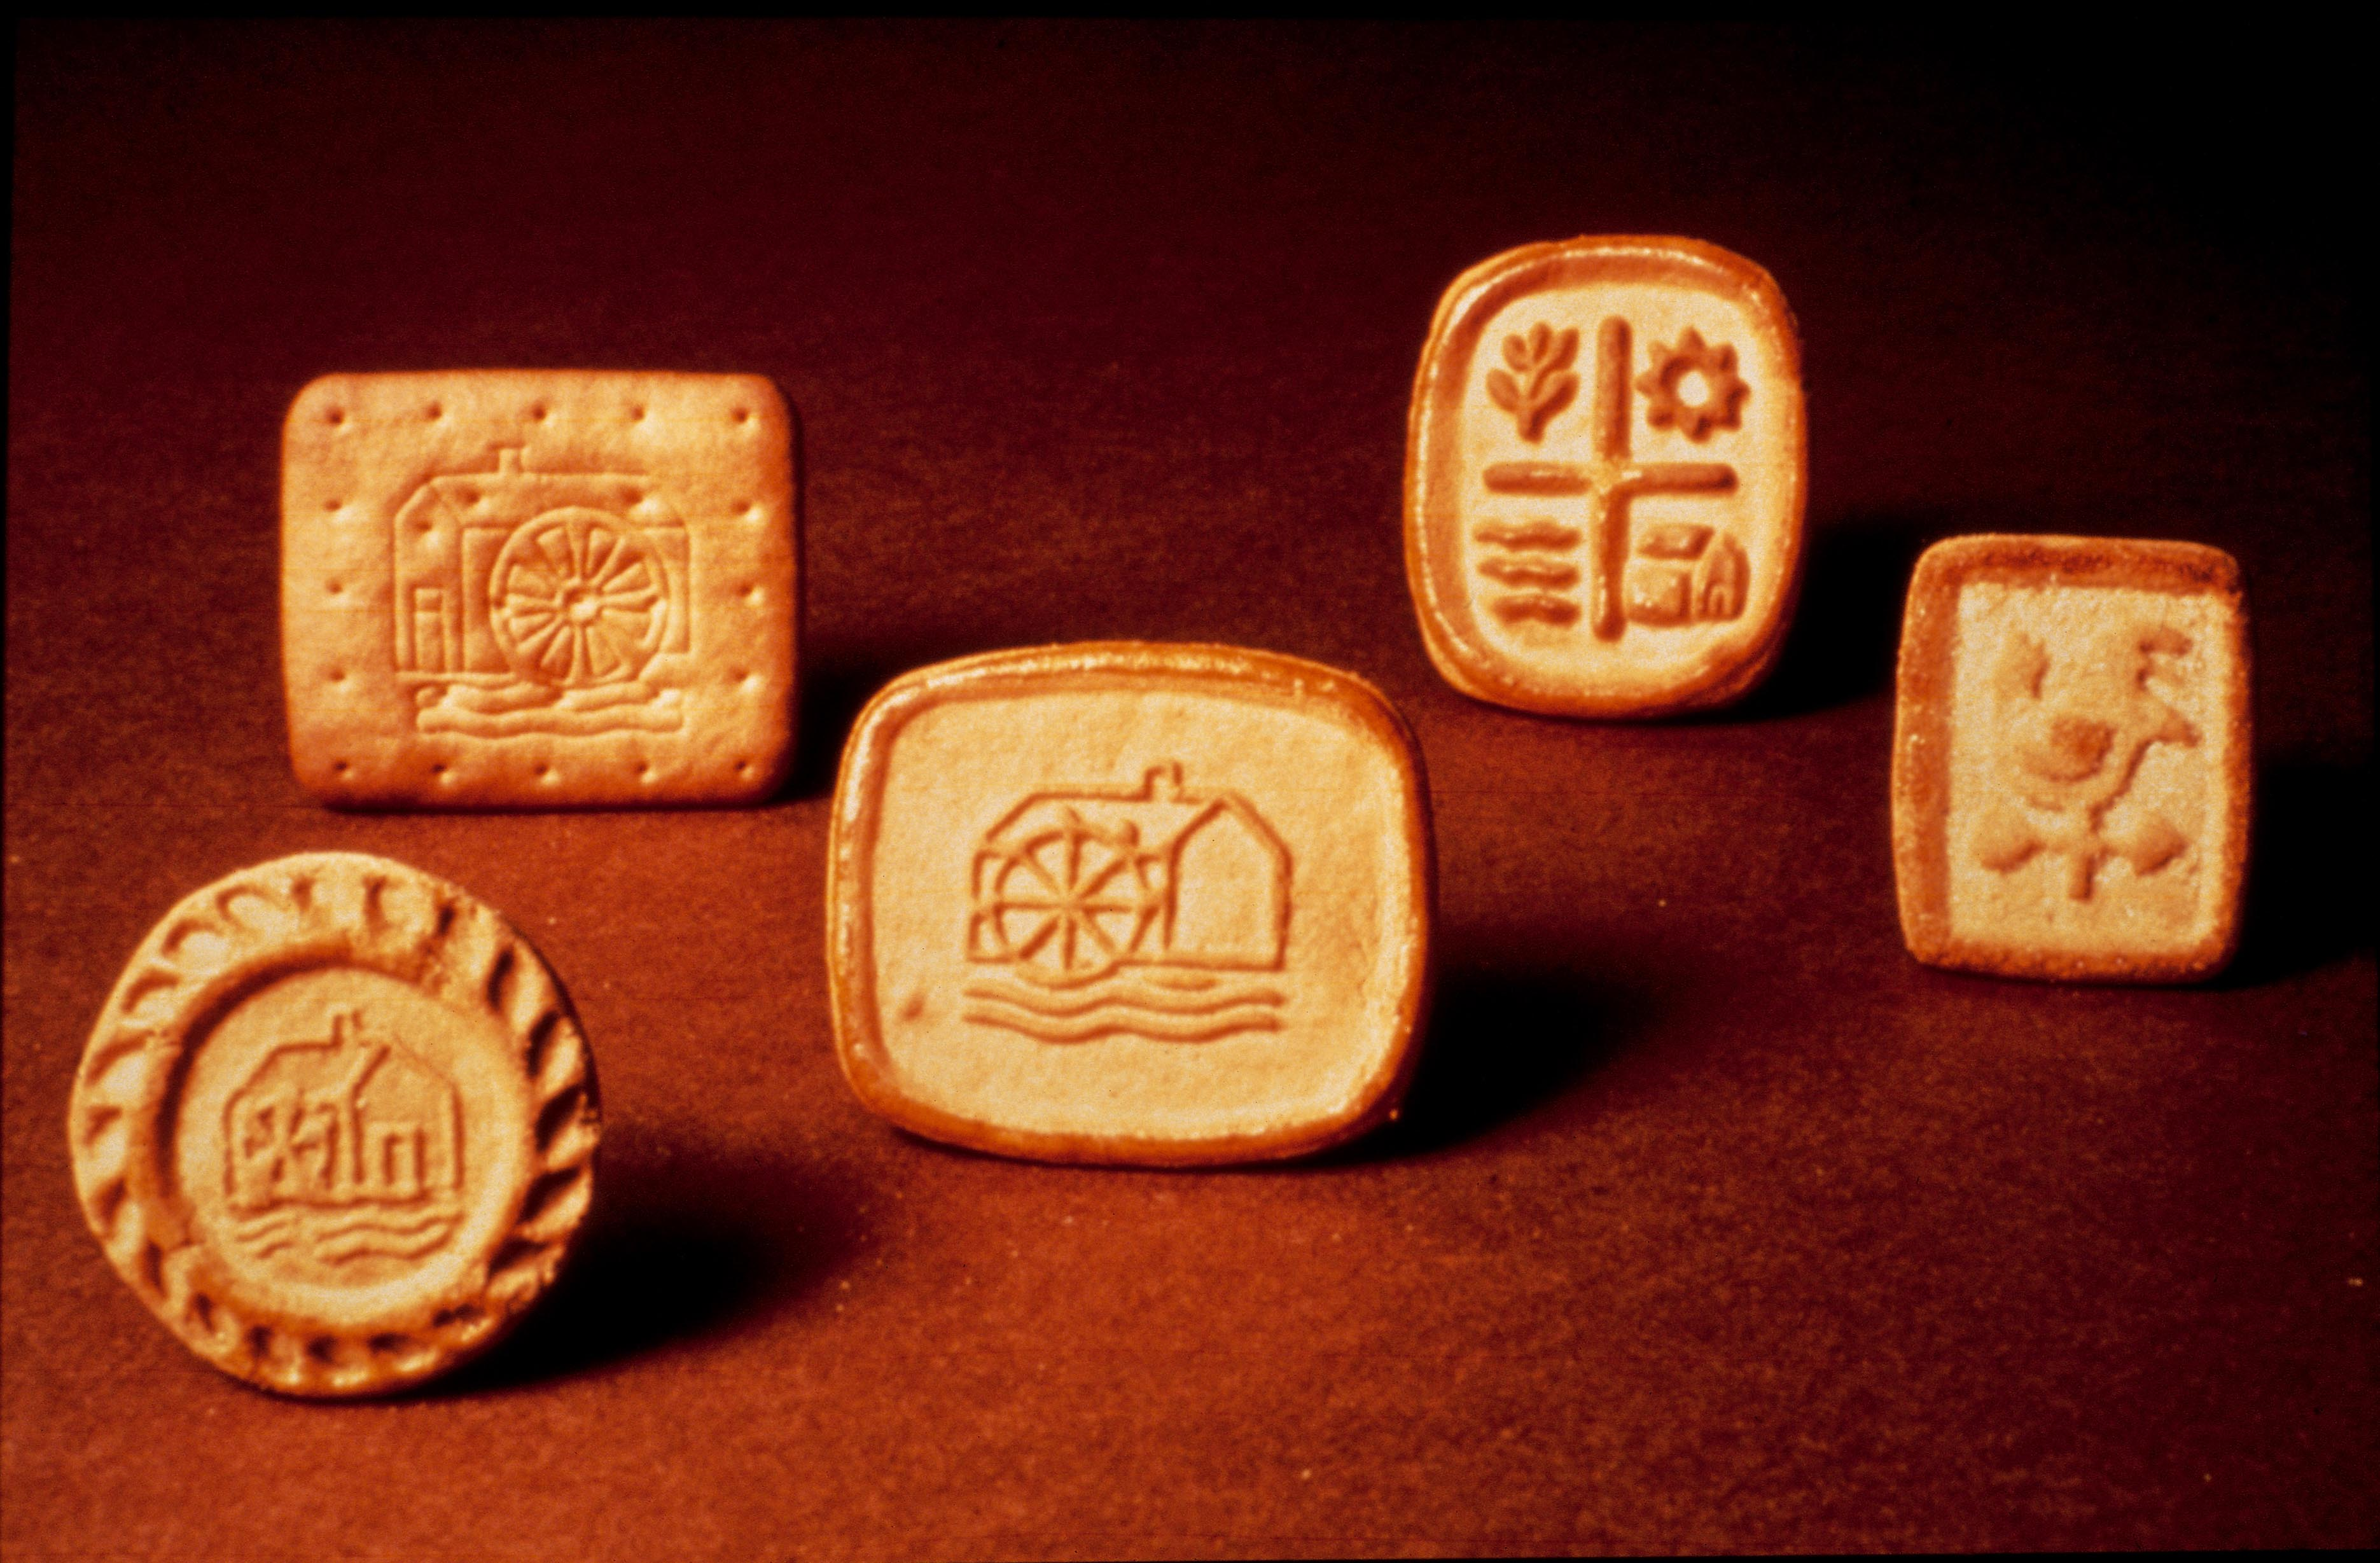 The first five biscuits of the Mulino Bianco range launched in 1976 - 01